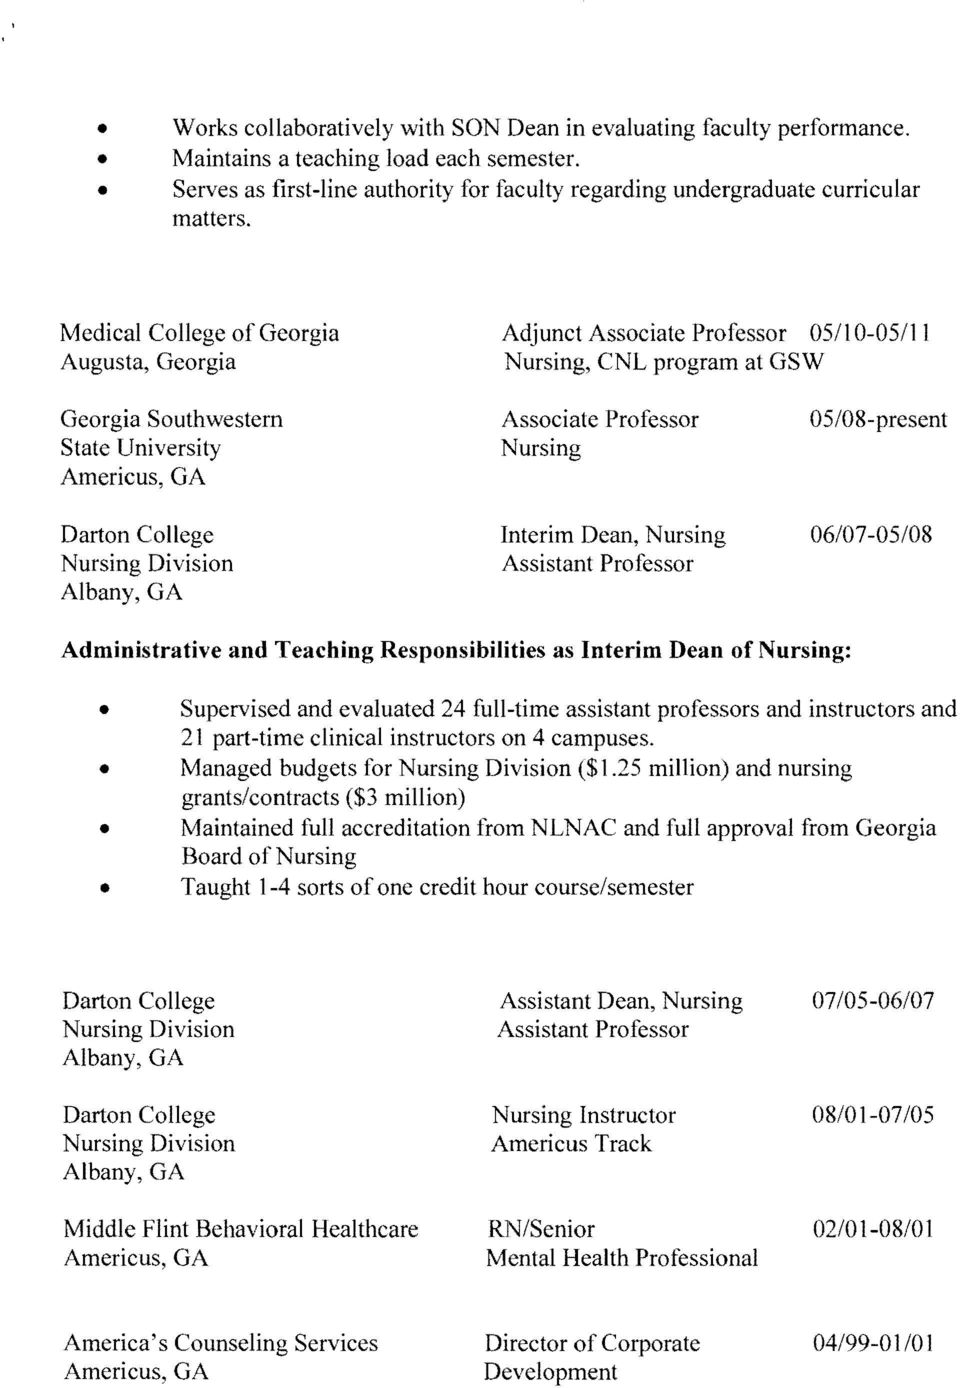 College Interim Dean, Nursing 06/07-05/08 Nursing Division Assistant Professor Albany, GA Administrative and Teaching Responsibilities as Interim Dean of Nursing: Supervised and evaluated 24